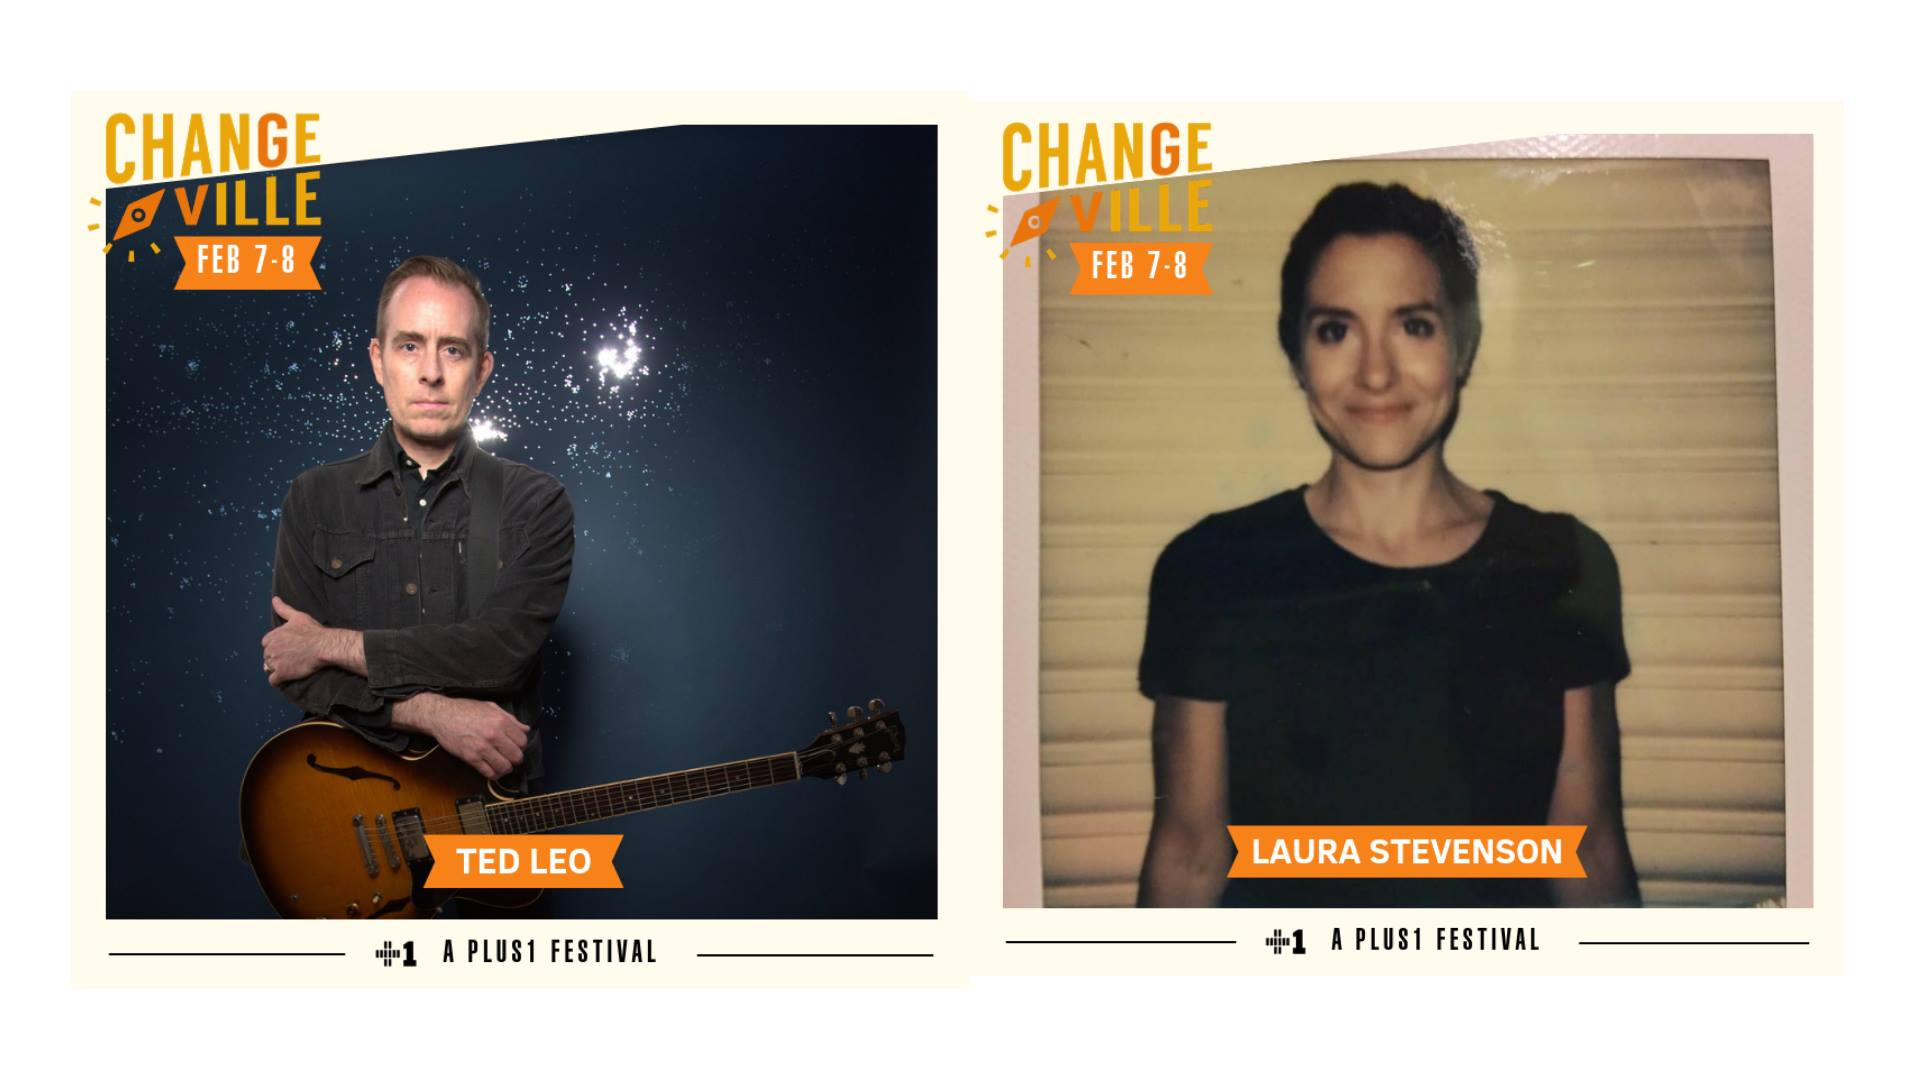 """Featuring Ted Leo and the Pharmacists (solo), Laura Stevenson , and more!  The Changeville Festival is a downtown music & arts festival featuring local and national artists united by a passion for social change. The two-day festival will take place at venues around the city's downtown such as Bo Diddley Plaza, The Hippodrome, High Dive, Wooly/Atlantic, Civic Media Center, Volta, & more.  Single-venue tickets and a limited amount of festival passes are available now at changeville.us/tickets   *Ted Leo, frontman for The Pharmacists, returned from his seven year hiatus last year to debut his solo work, The Hanged Man. Being dropped from label Matador Records seemed to do little to no damage to Leo. The album was funded through a Kickstarter campaign fans helped reach its goal within the first day. Leo recorded in a home studio where he played many of the instruments himself.  Coinciding with his return to music, Leo has become more open to exploring past traumas he has endured in his latest release. Likewise, many songs featured on The Hanged Man act as a vehicle for Leo to discuss topics such as institutional racism, sexism, and xenophobia. He explains these tracks are not an excuse to yell at the President, but rather to help those on the ground who are directly affected by these phenomena and to start a conversation with those who'll actually listen.  *Laura Stevenson, the former keyboard player for Bomb The Music Industry!, has released four albums since her initial solo debut in 2010, A Record. Many of Stevenson's lyrics deal with emotionally closing off, refusing support from others, and the persistent fear she's wasted her younger years unable to shake these habits. When asked why her music deals with such sad aspects of life yet sounds so musically lighthearted, Stevenson told Allston Pudding, """"I try not to be so melodramatic because life is just so much happiness and sadness juxtaposed. The contrast makes it more fun and easier to deal with. Life's going to b"""